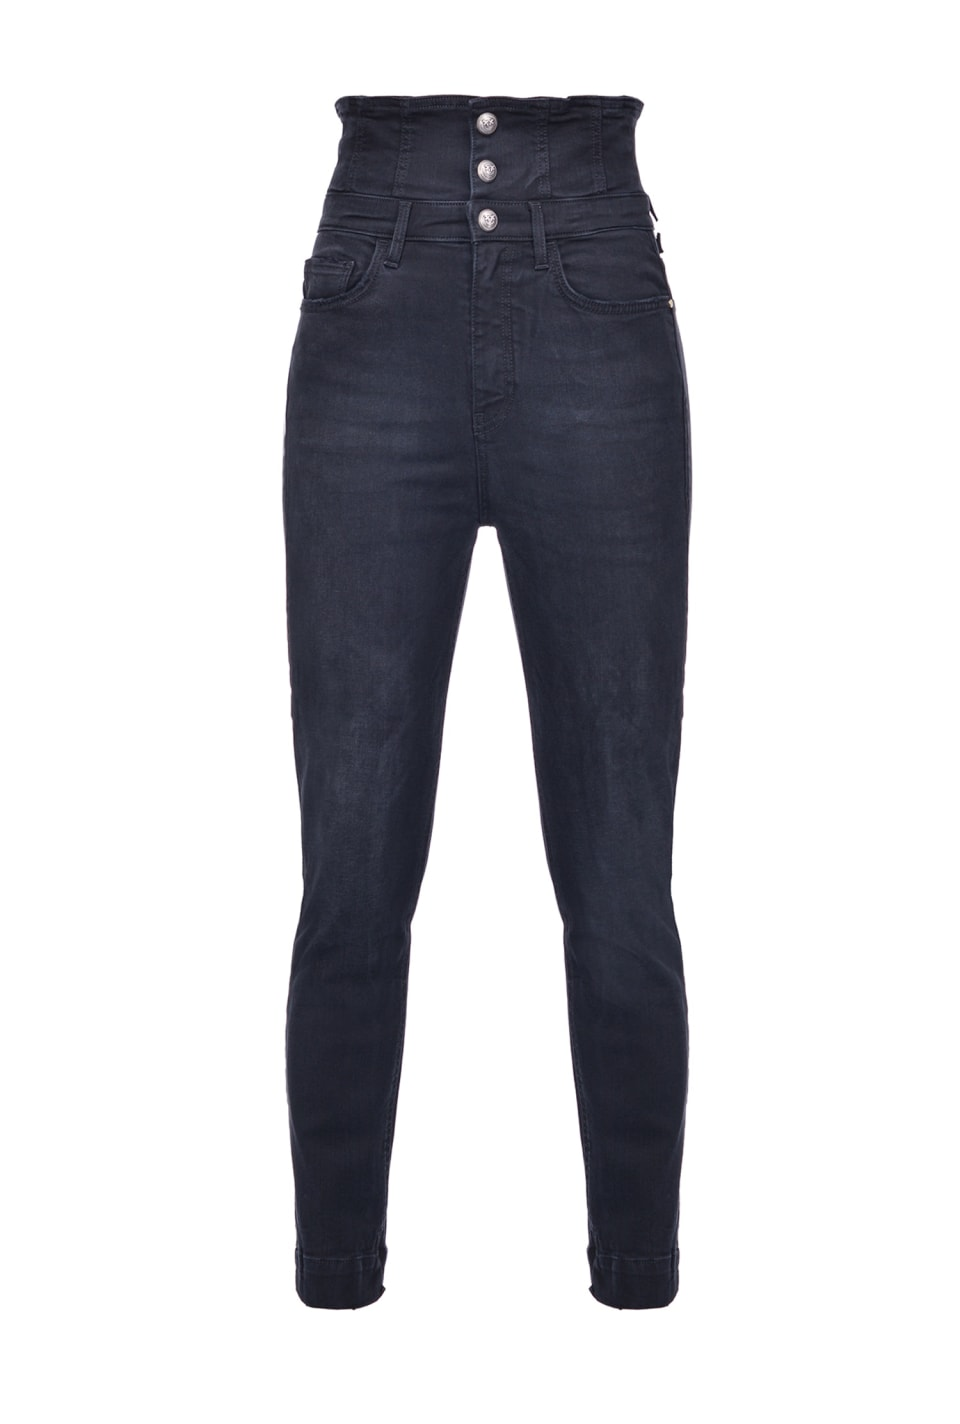 Skinny super high-rise jeans in black power stretch denim